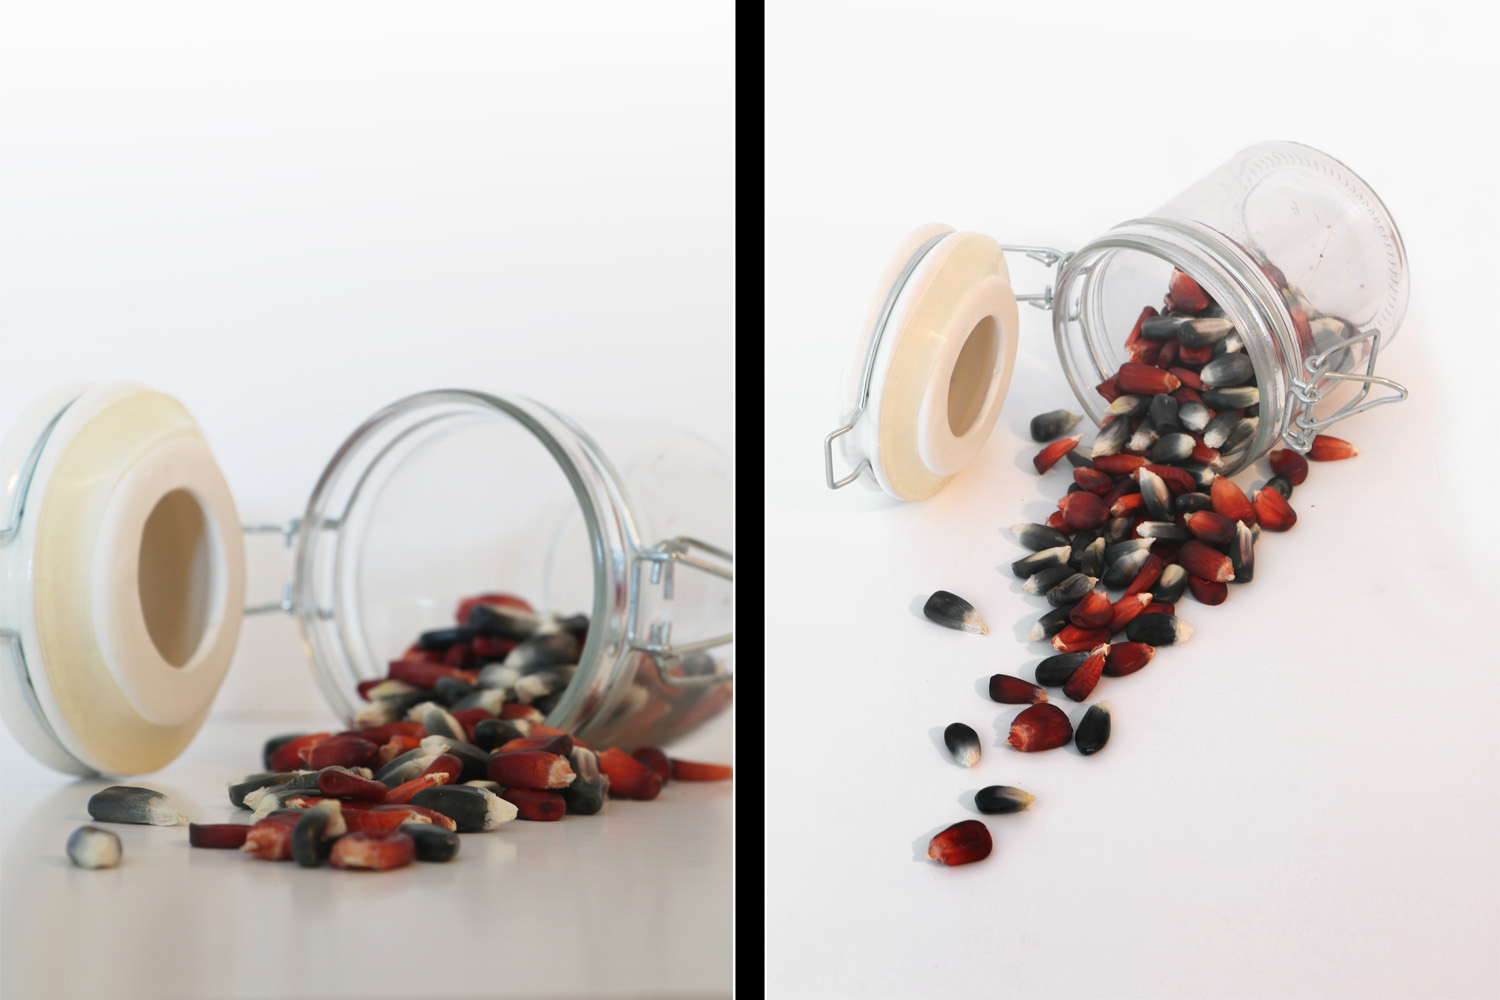 food photography ideas two different angles of a jar with seeds